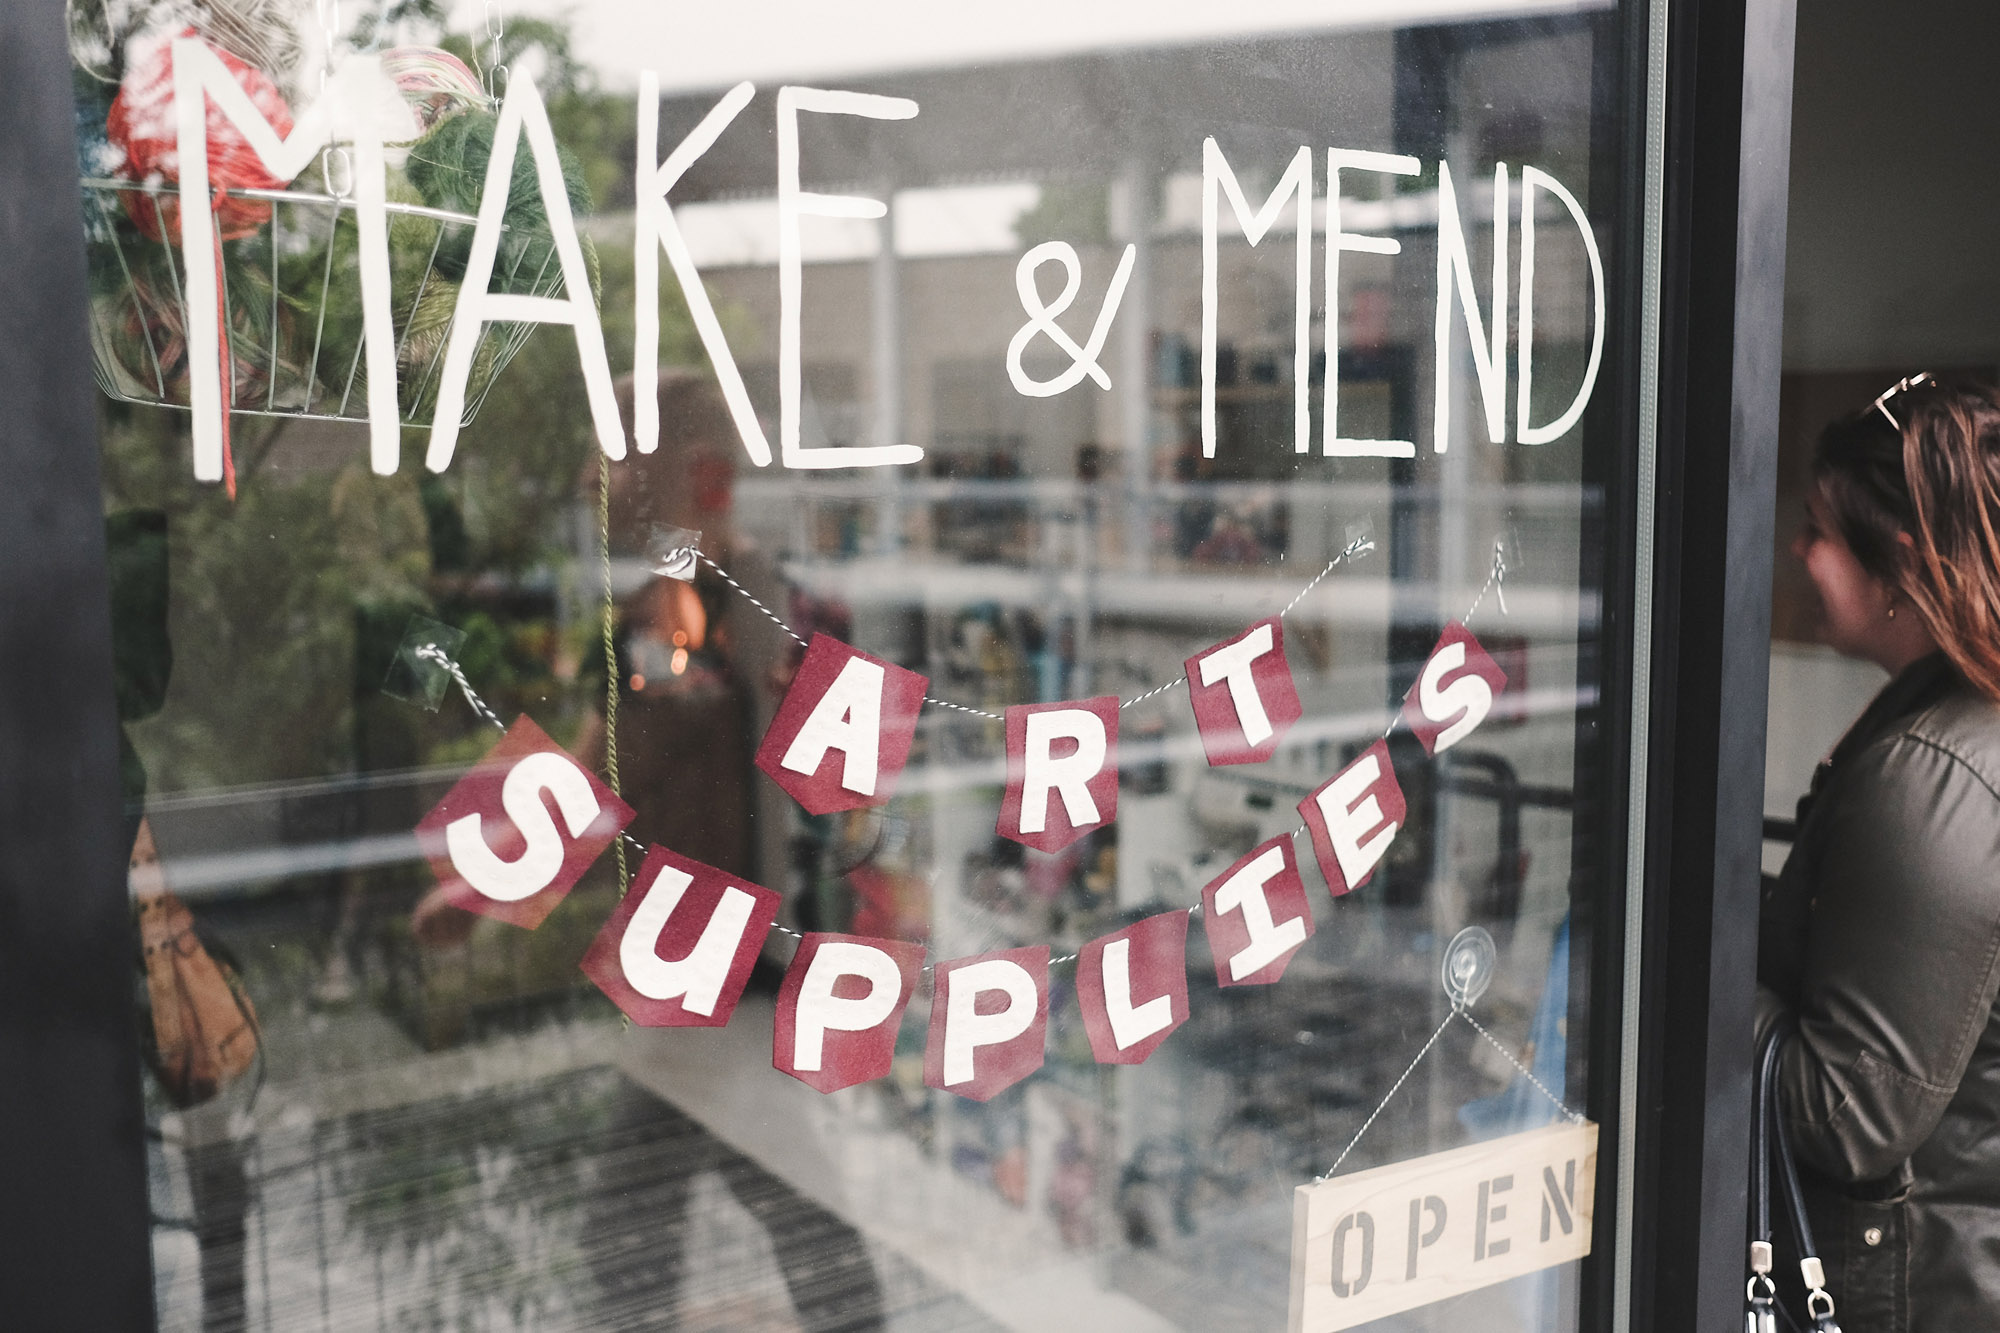 http://makeandmendsomerville.com